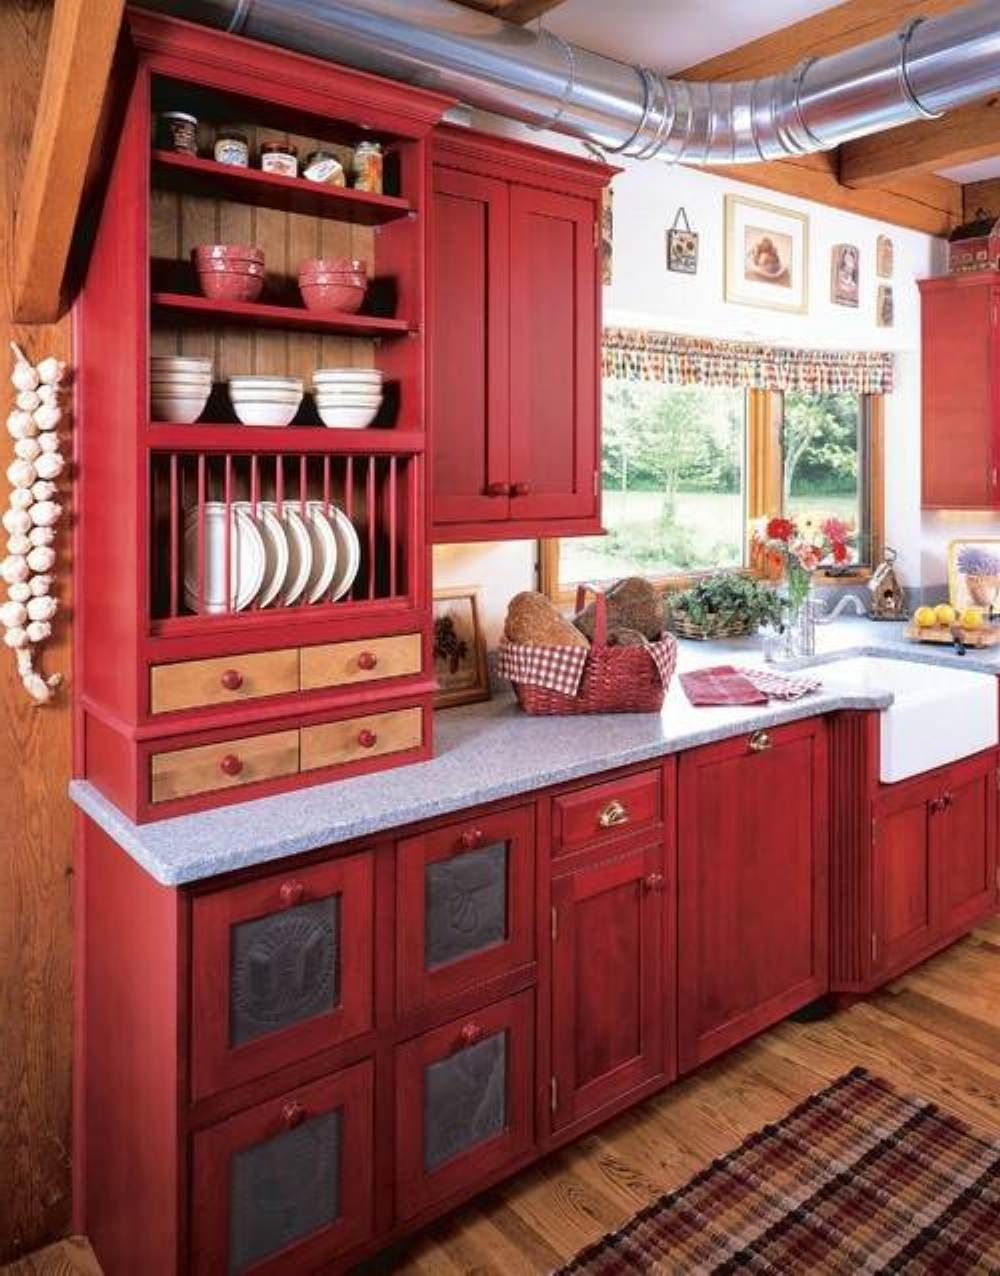 Paint Colors For Small Kitchen Red Kitchen Cabinet Paint Colors Perfect Kitchen Cabinet Paint